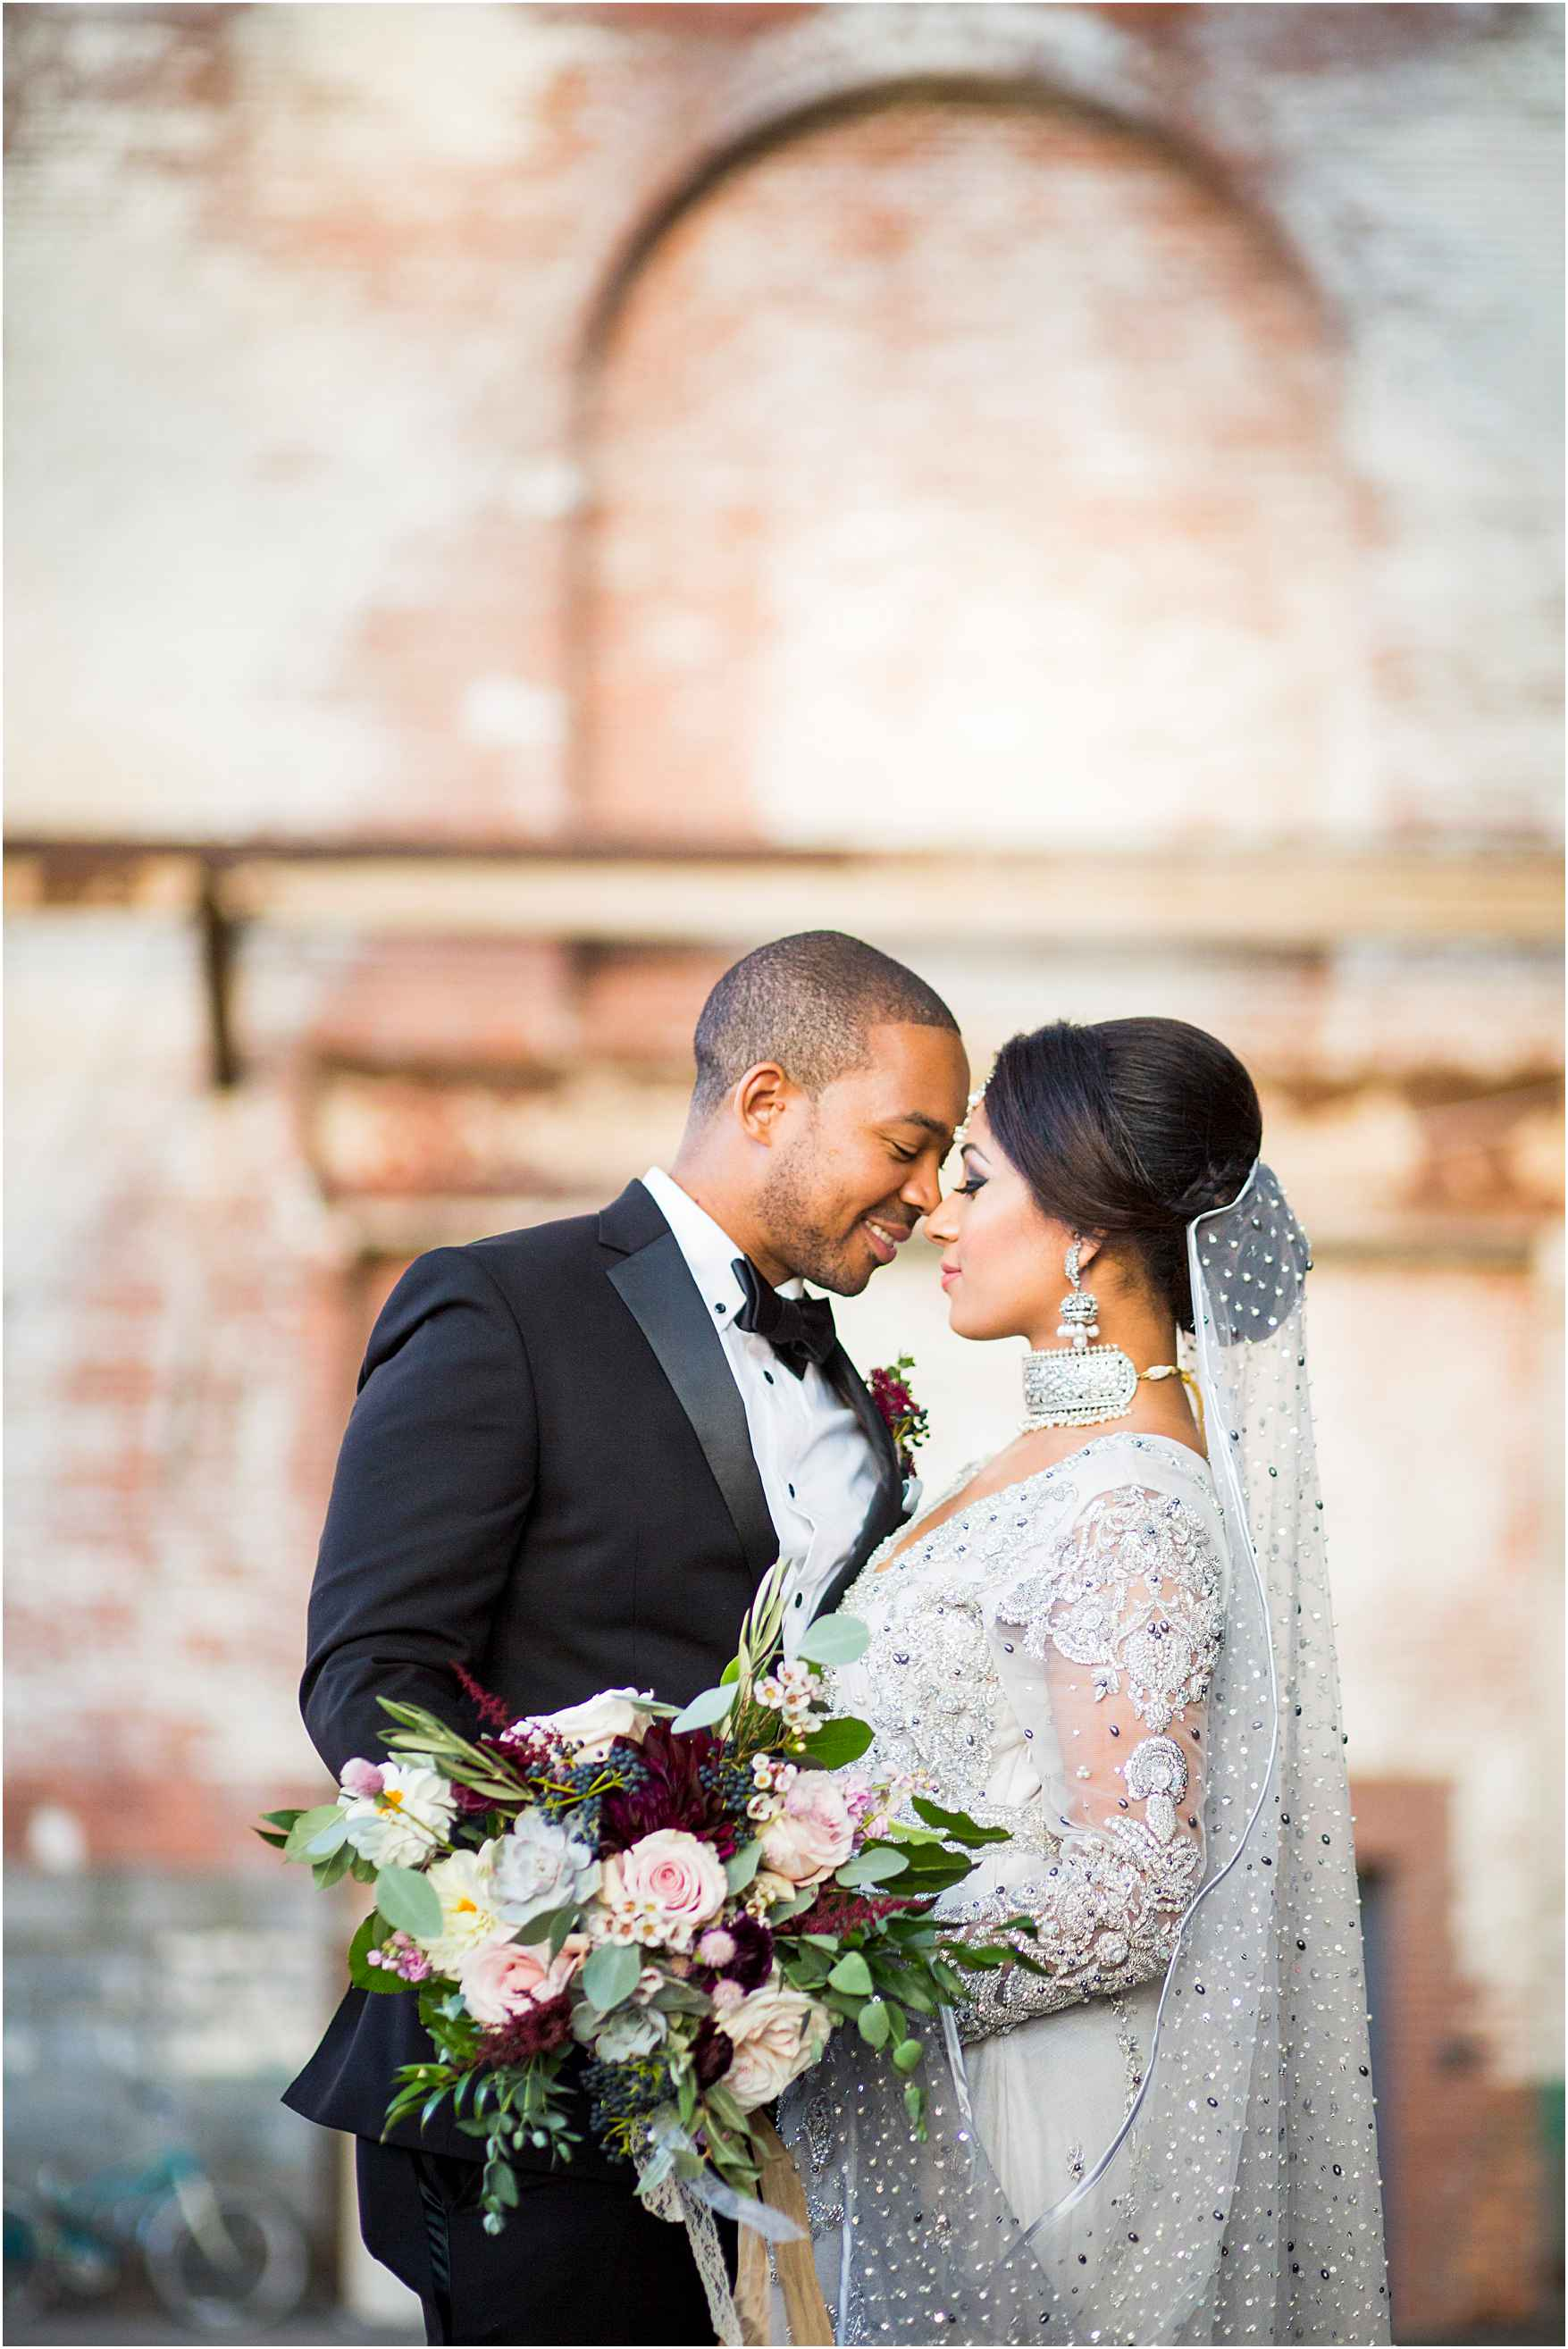 Baltimore South Asian Fusion Wedding